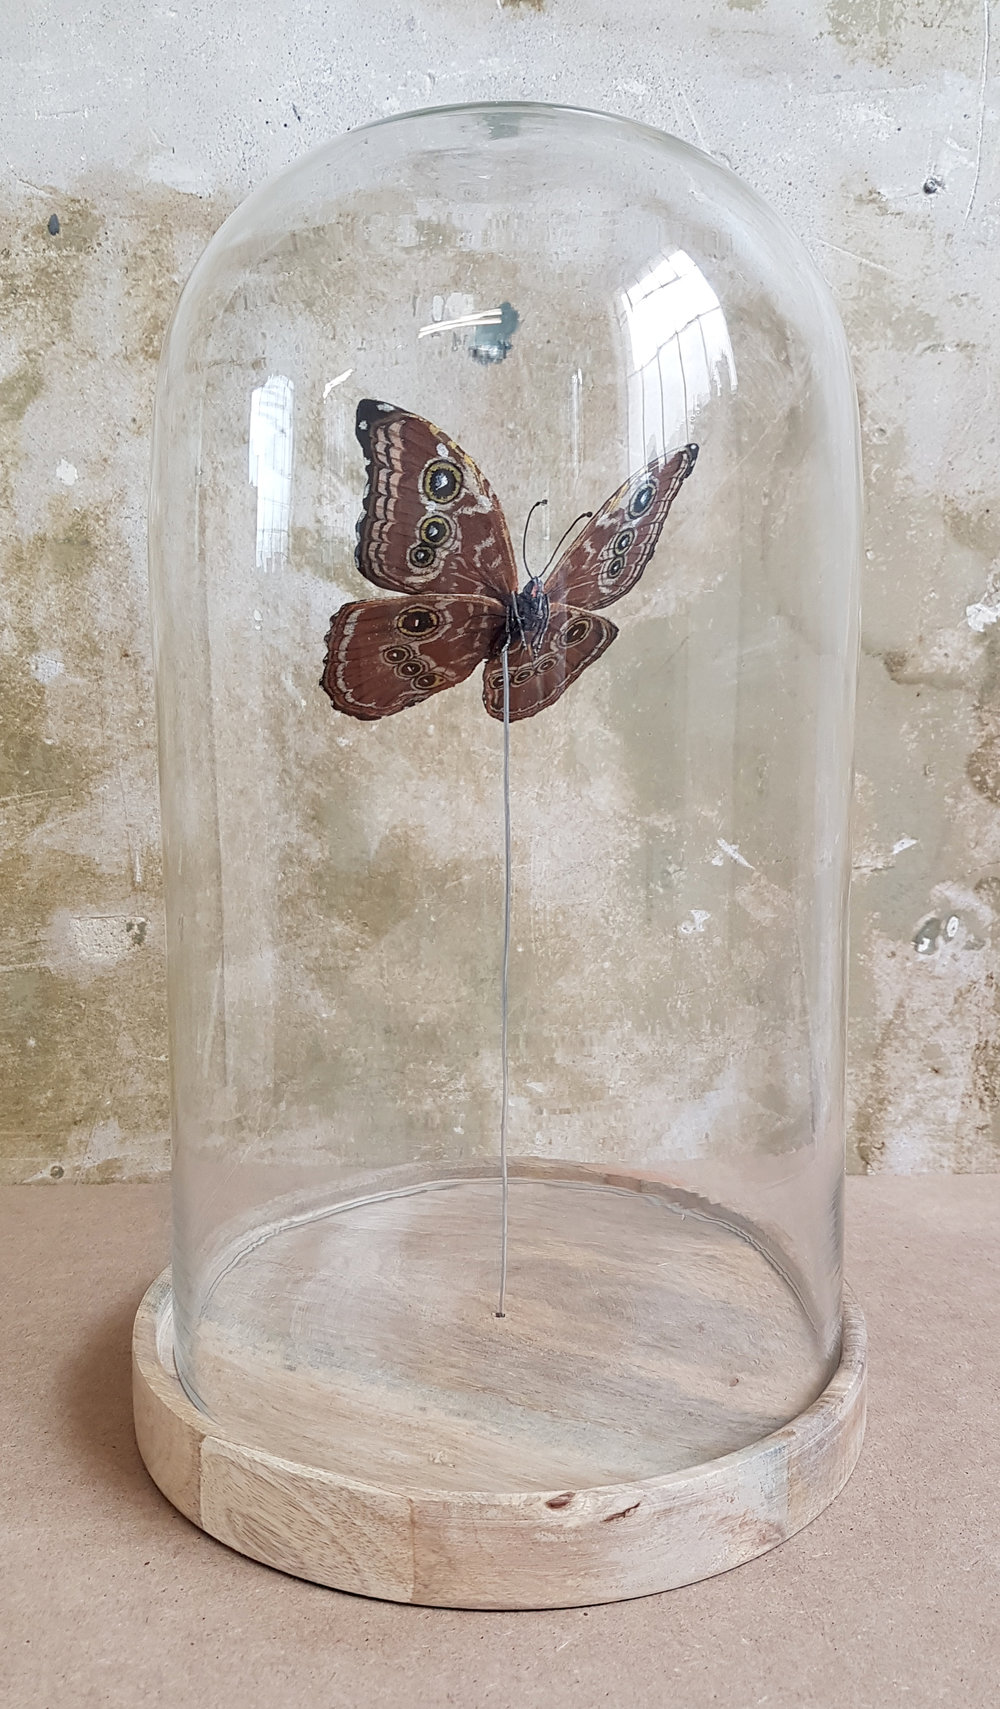 The butterfly is visible from all angles within it's bell jar.